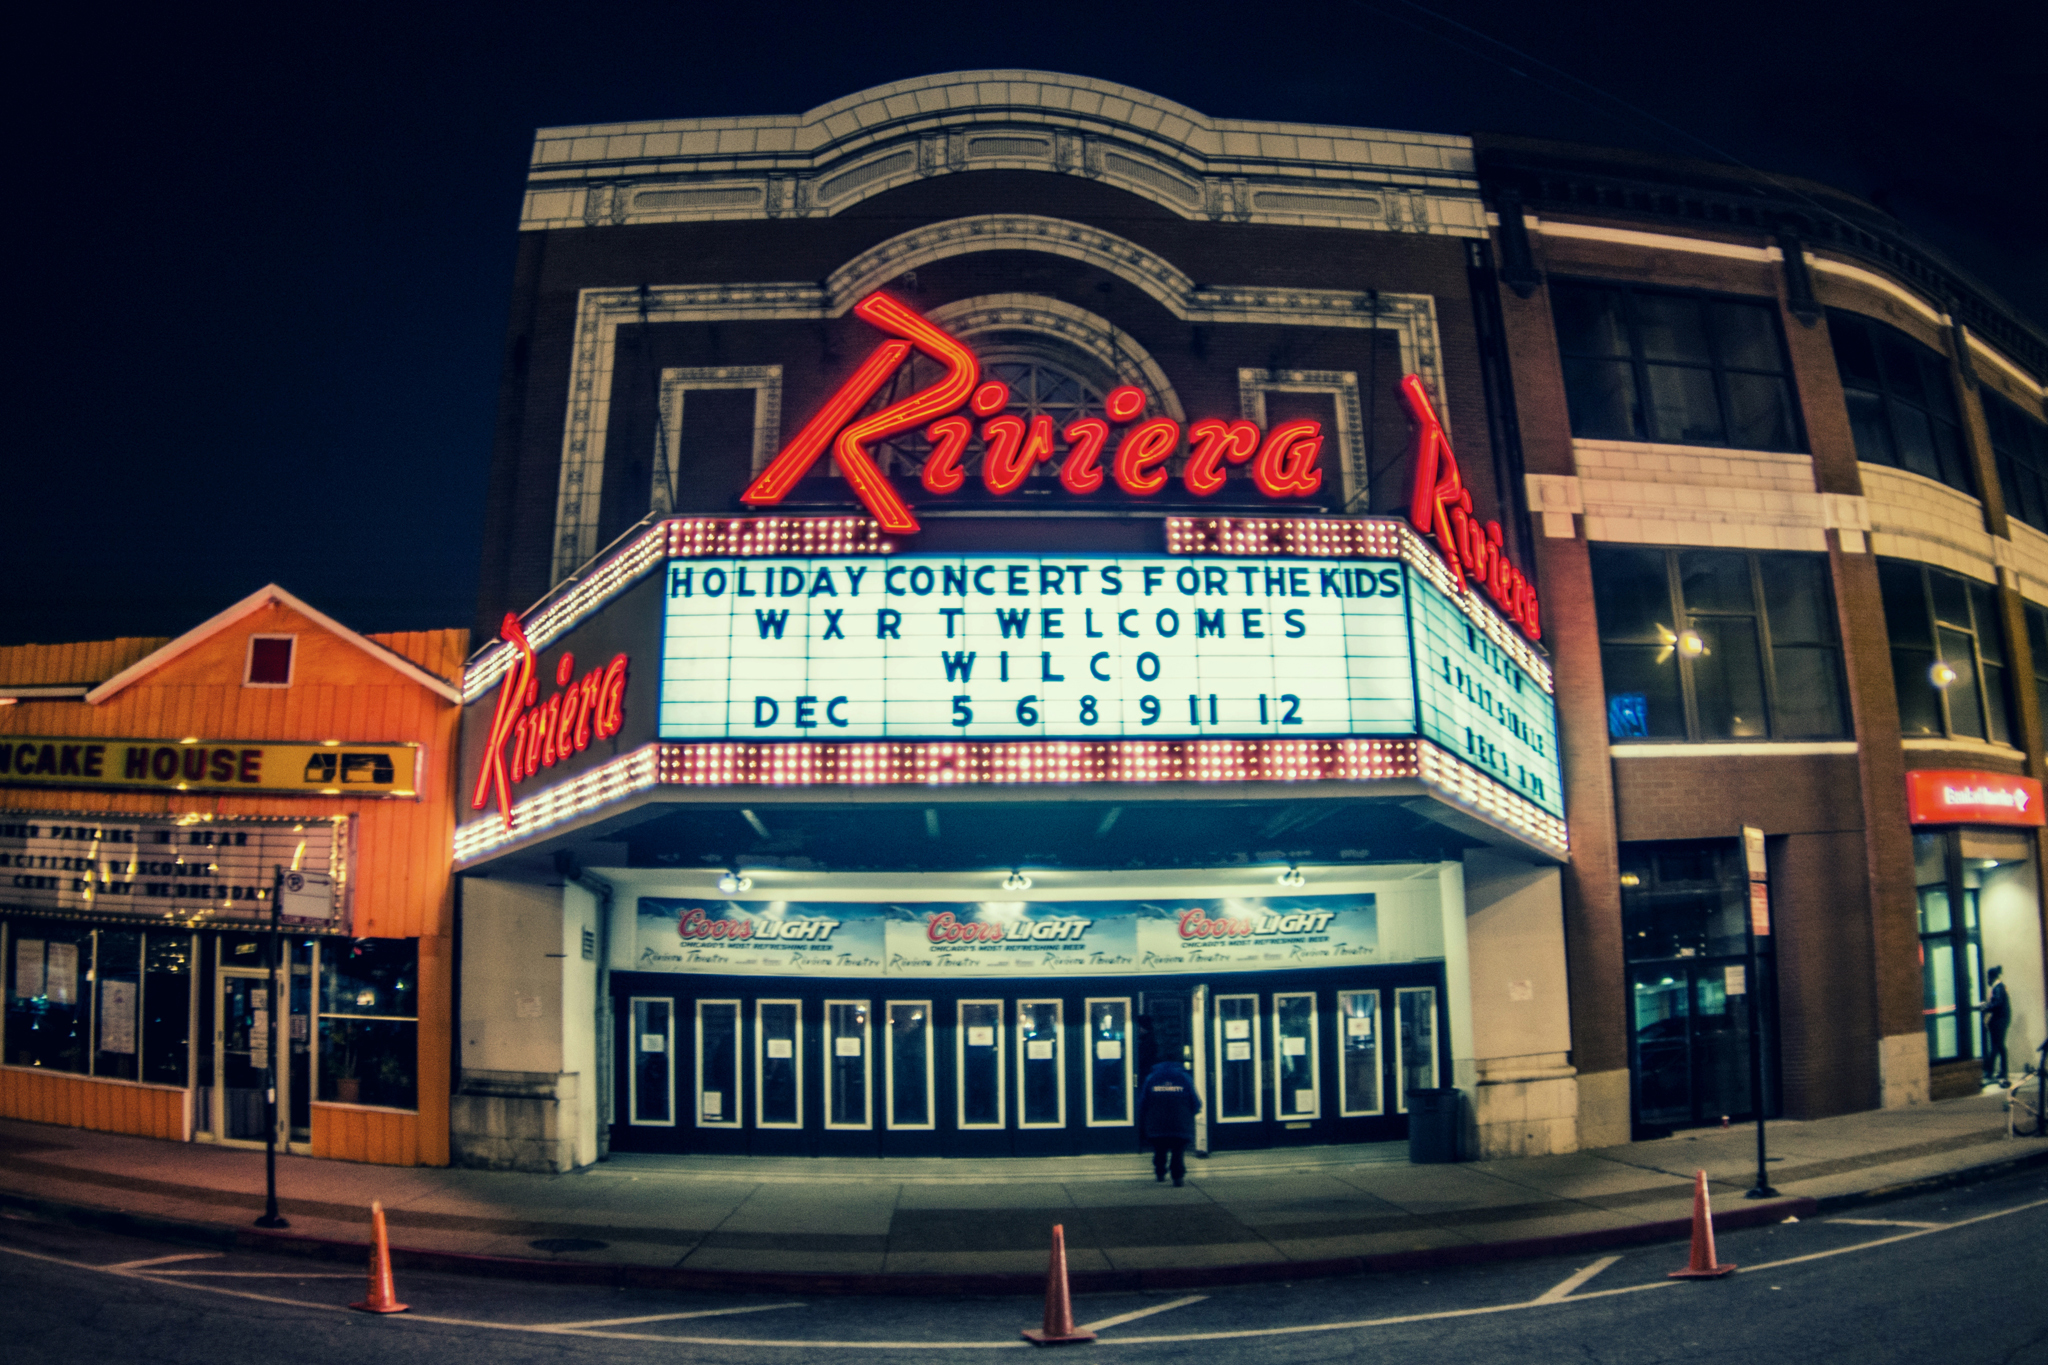 Wilco kicked off its six-night stand at the Riv, Friday Dec 5, 2014.